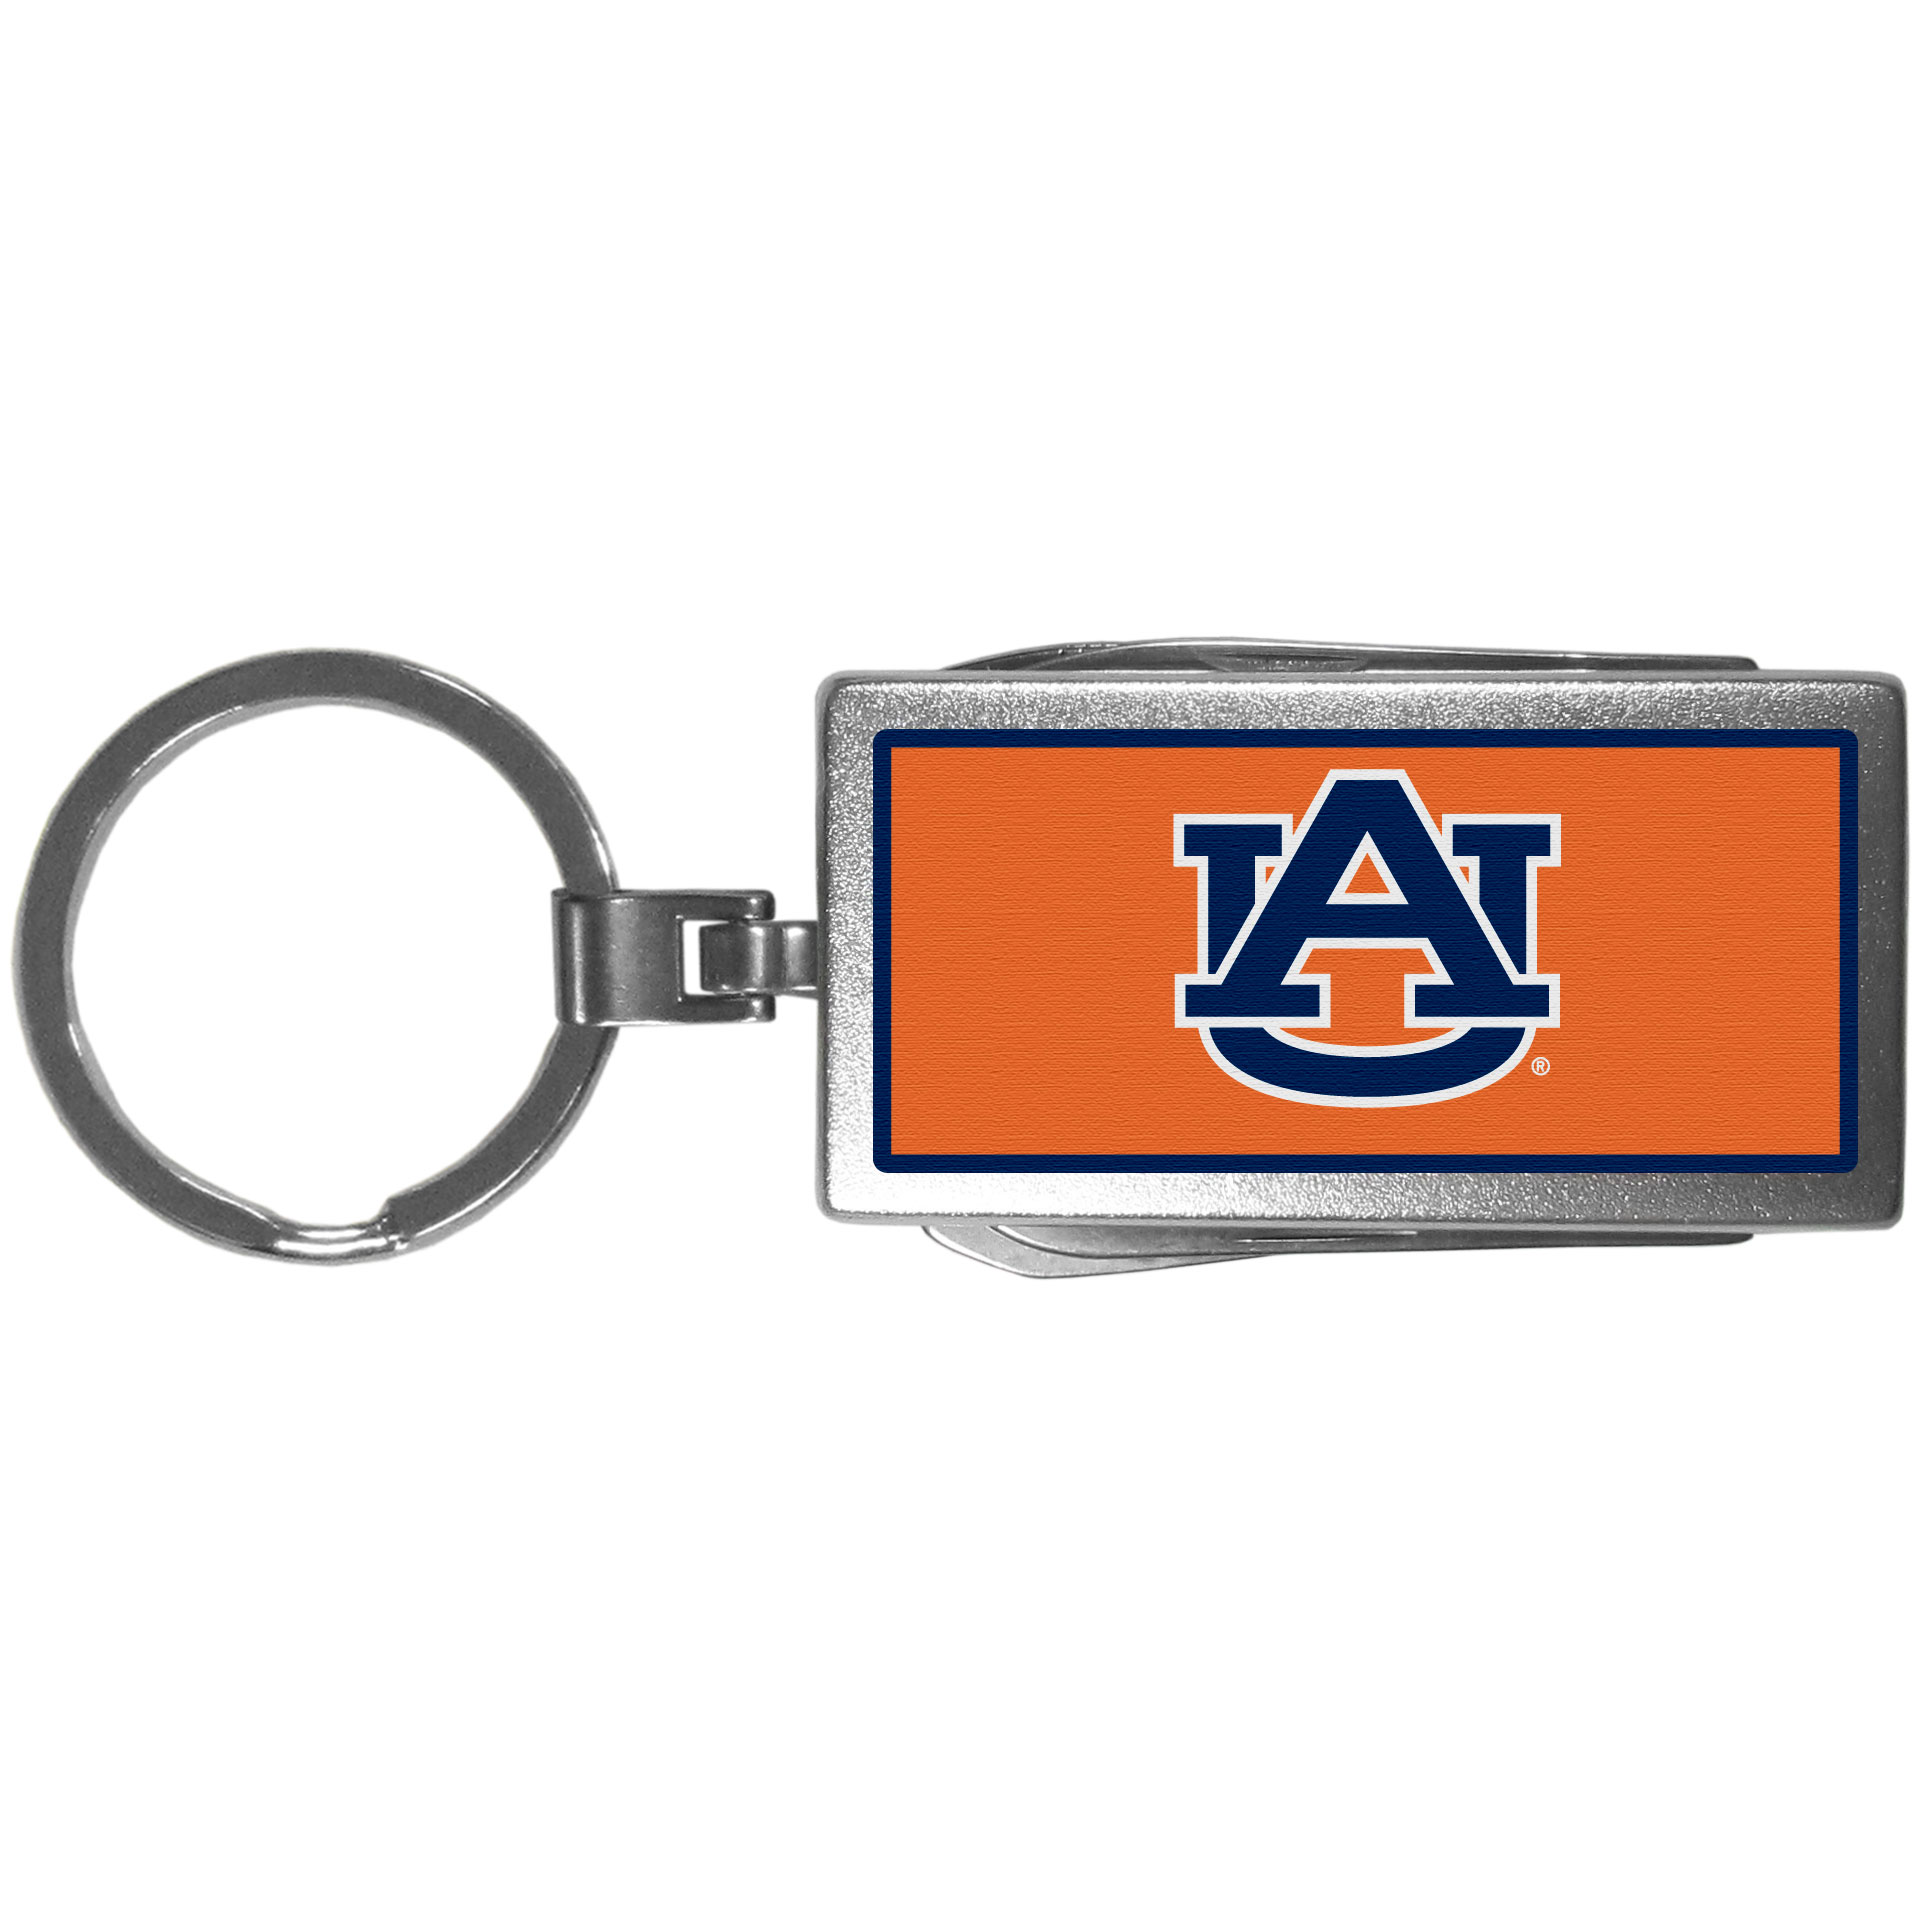 Auburn Tigers Multi-tool Key Chain, Logo - Be the hero at the tailgate, camping, or on a Friday night with your Auburn Tigers Multi-Tool Keychain which comes complete with bottle opener, scissors, knife, nail file and screw driver. Be it opening a package or a beverage Siskiyou's Multi-Tool Keychain goes wherever your keys do. The keychain hangs at 4 inches long when closed.